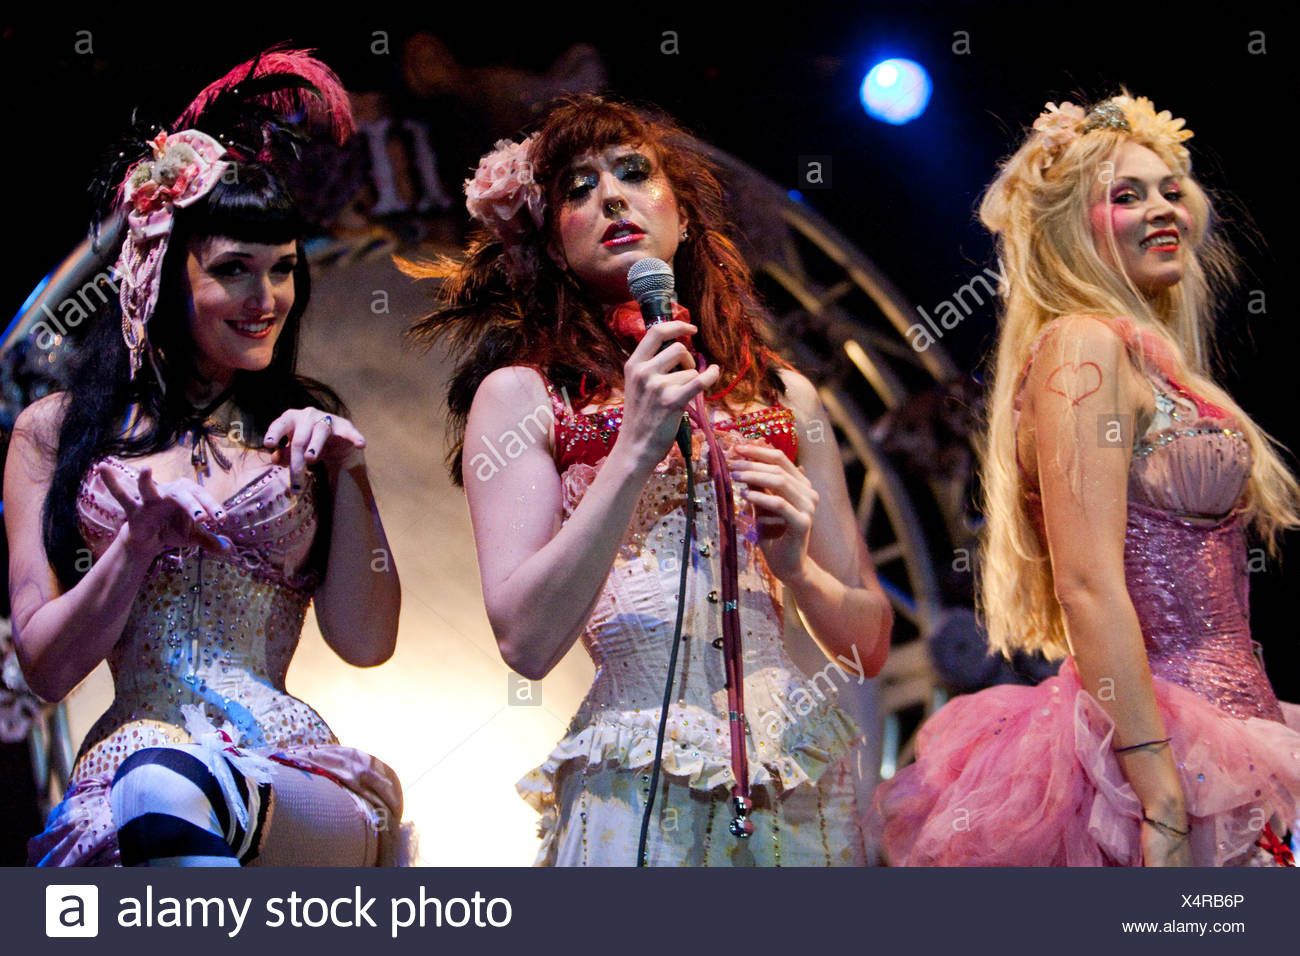 Singers and dancers from Emilie Autumn's live show at her only Swiss concert in Club Haerterei in Zurich, Switzerland, Europe - Stock Image